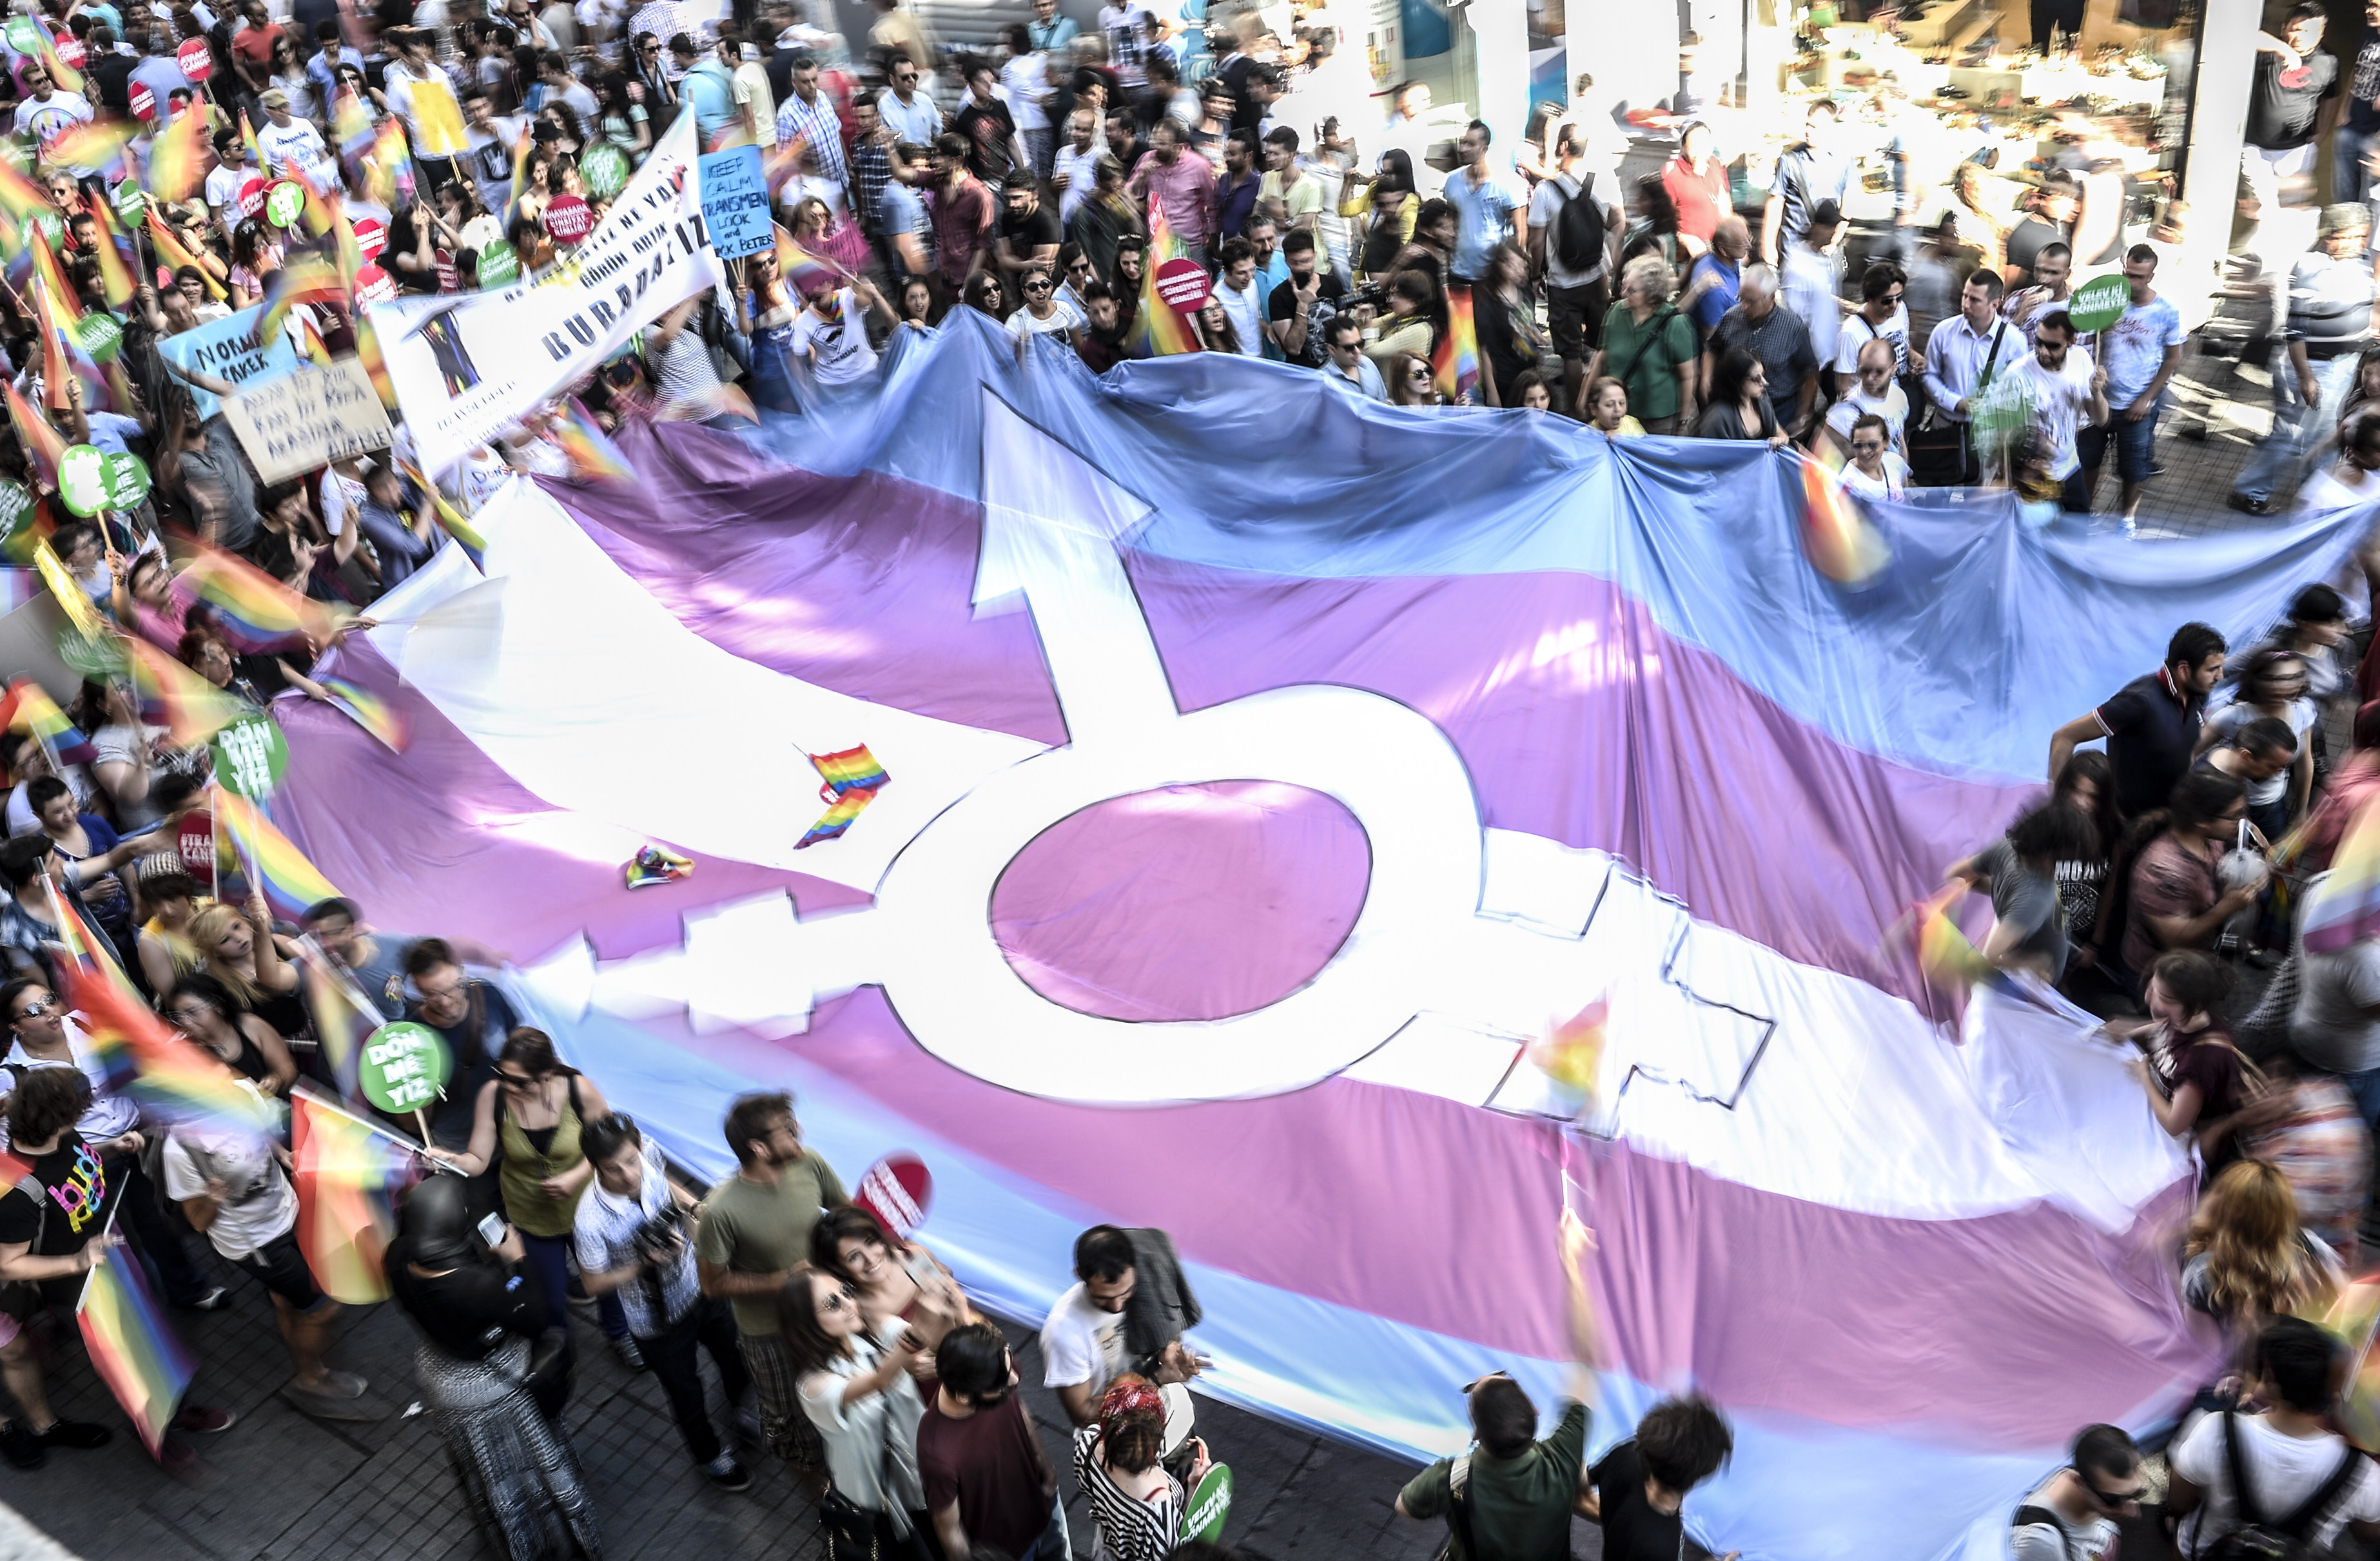 People hold a giant transgender flag during a gay parade on Istiklal Street, the main shopping corridor in Istanbul, on June 22, 2014, during the Trans Pride Parade as part of the Trans Pride Week 2014, which is organized by Istanbul's 'Lesbians, Gays, Bisexuals, Transvestites and Transsexuals' (LGBTT) solidarity organization. AFP PHOTO/BULENT KILIC        (Photo credit should read BULENT KILIC/AFP/Getty Images)